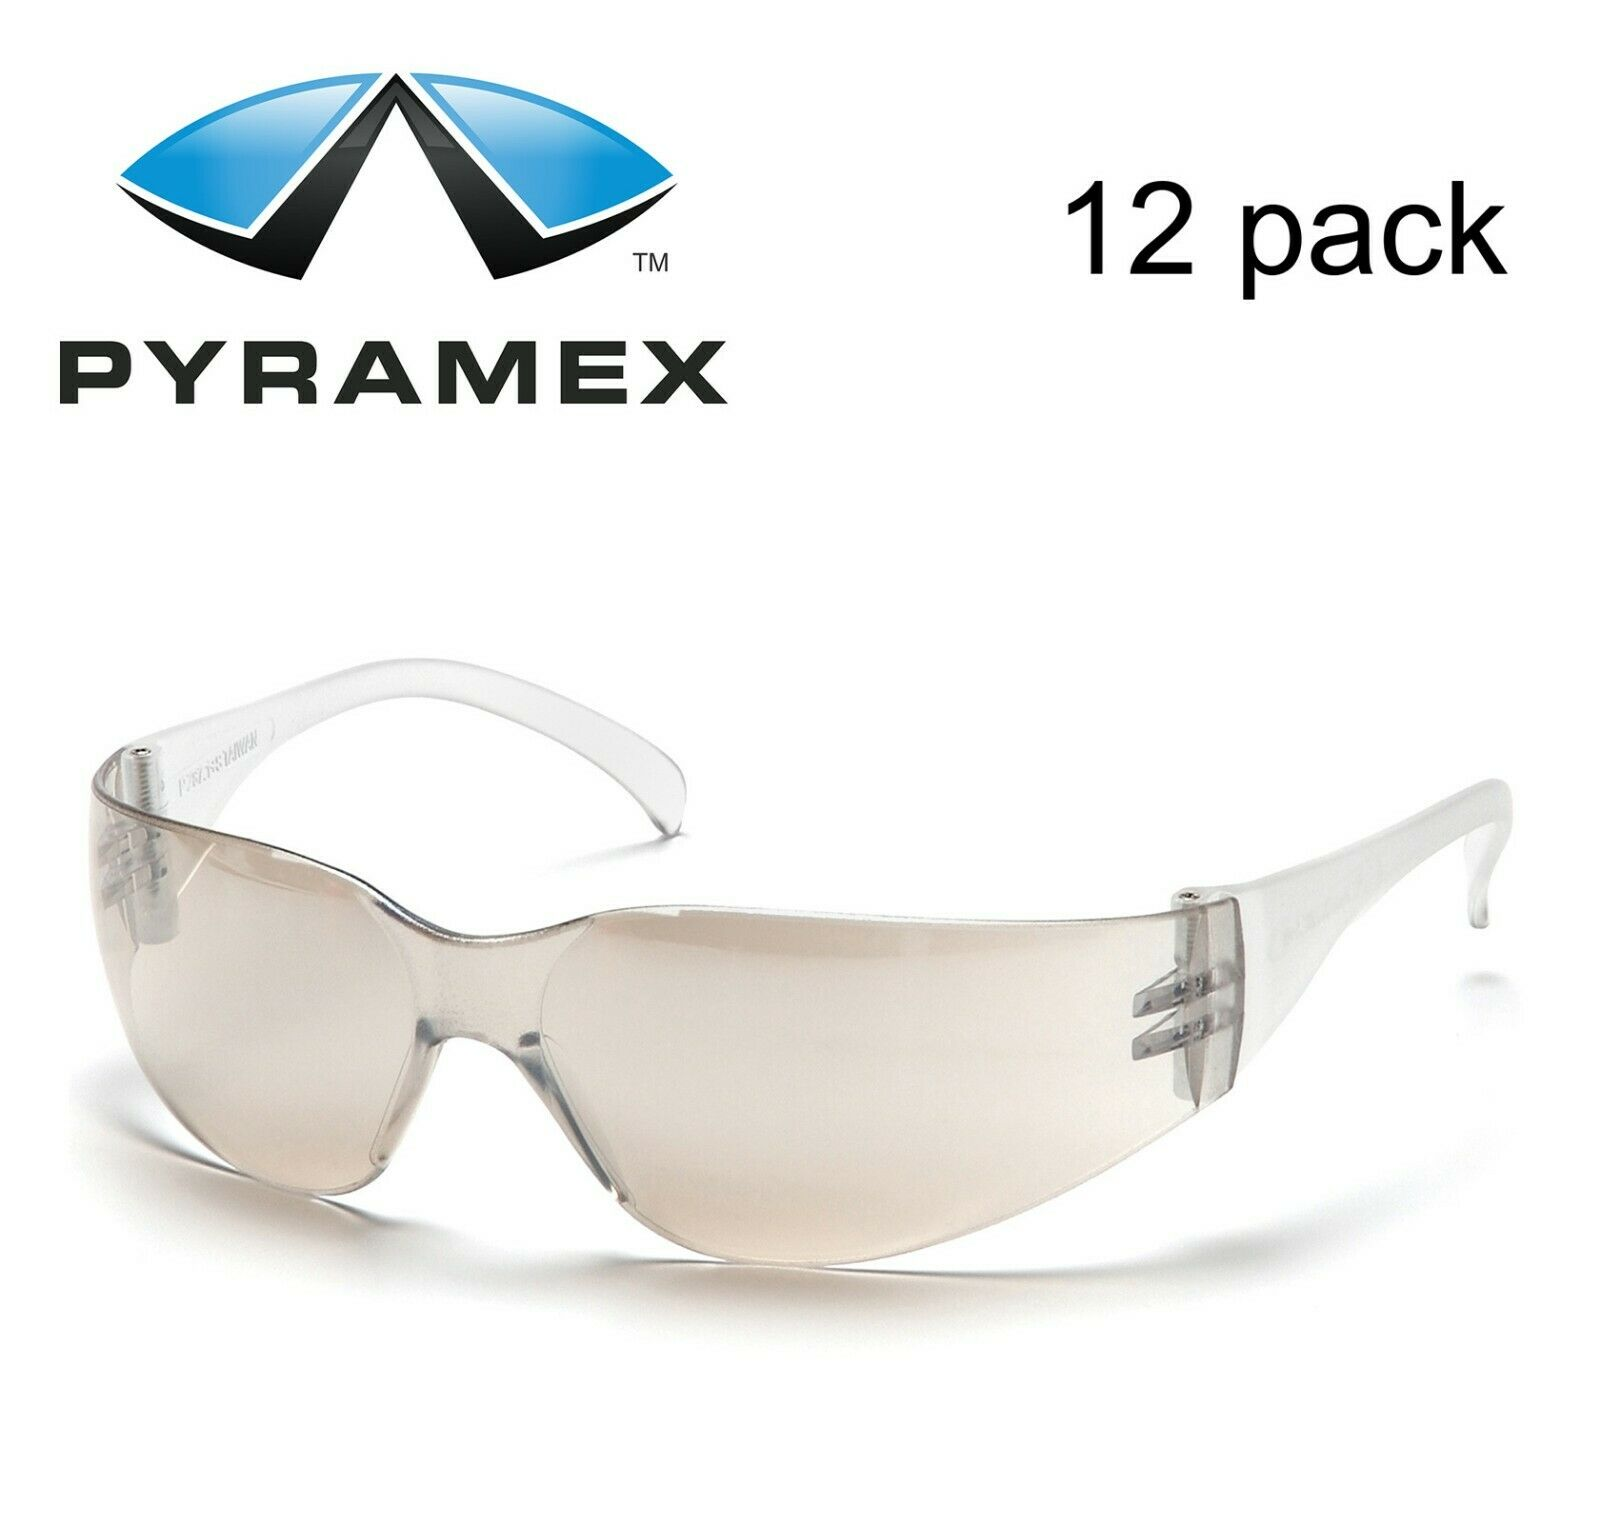 Pyramex Intruder S4180S I/O MIRROR Safety Glasses Work Eyewear 12 Pair/1Dozen Business & Industrial